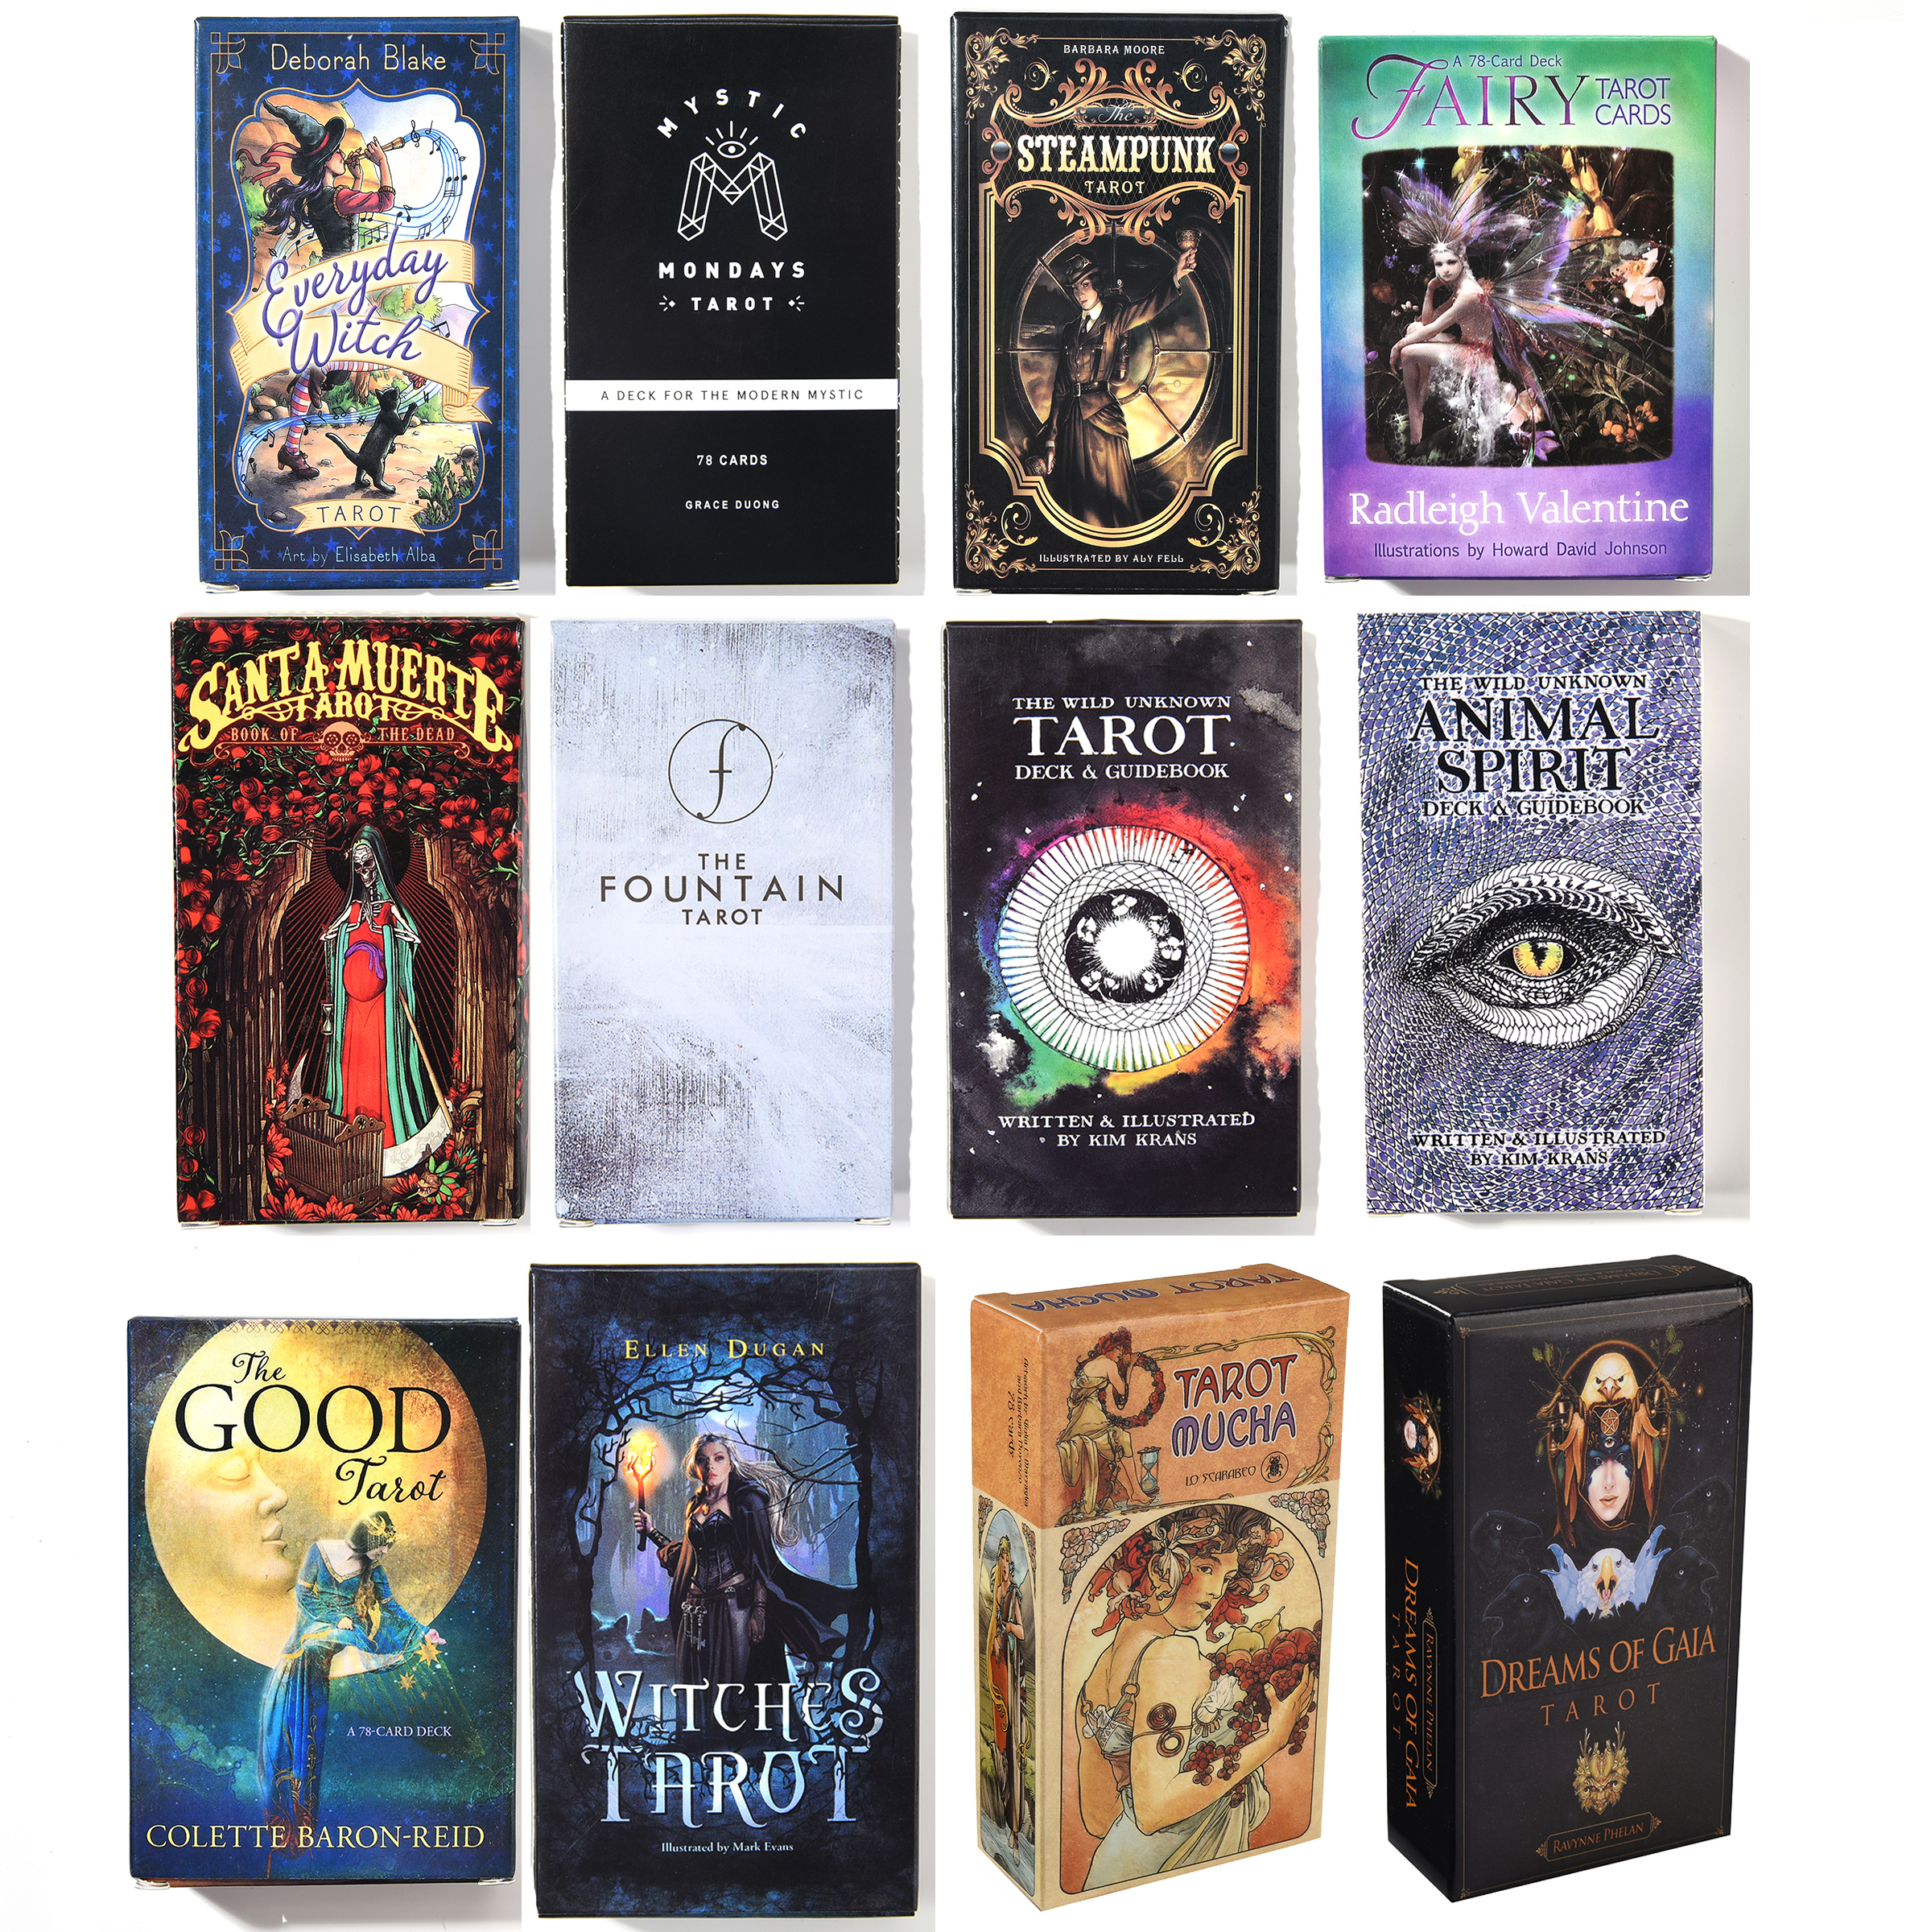 Everyday Witch Mystic Mondays Tarot Steampunk Fairy Good Animal Spirit Deck Fountain Santa Muerte Witches Mucha Card Game